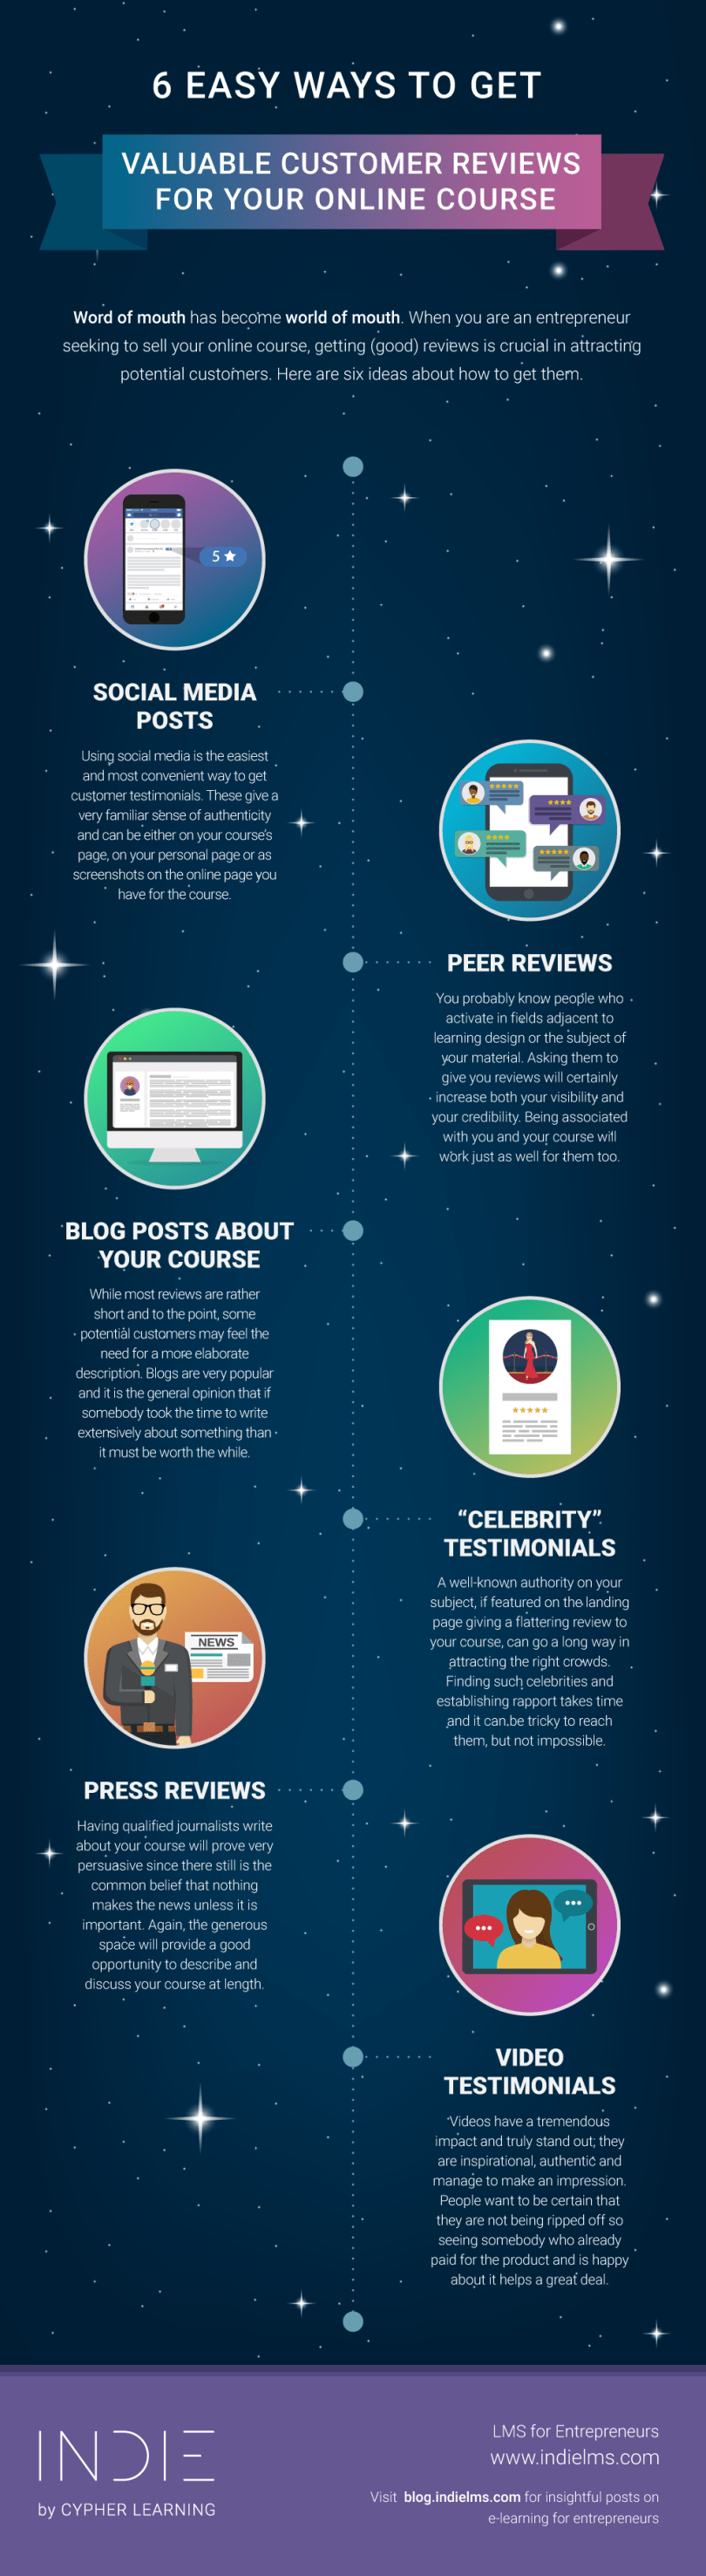 6-easy-ways-to-get-valuable-customer-reviews-for-your-online-course infographic | INDIE Blog